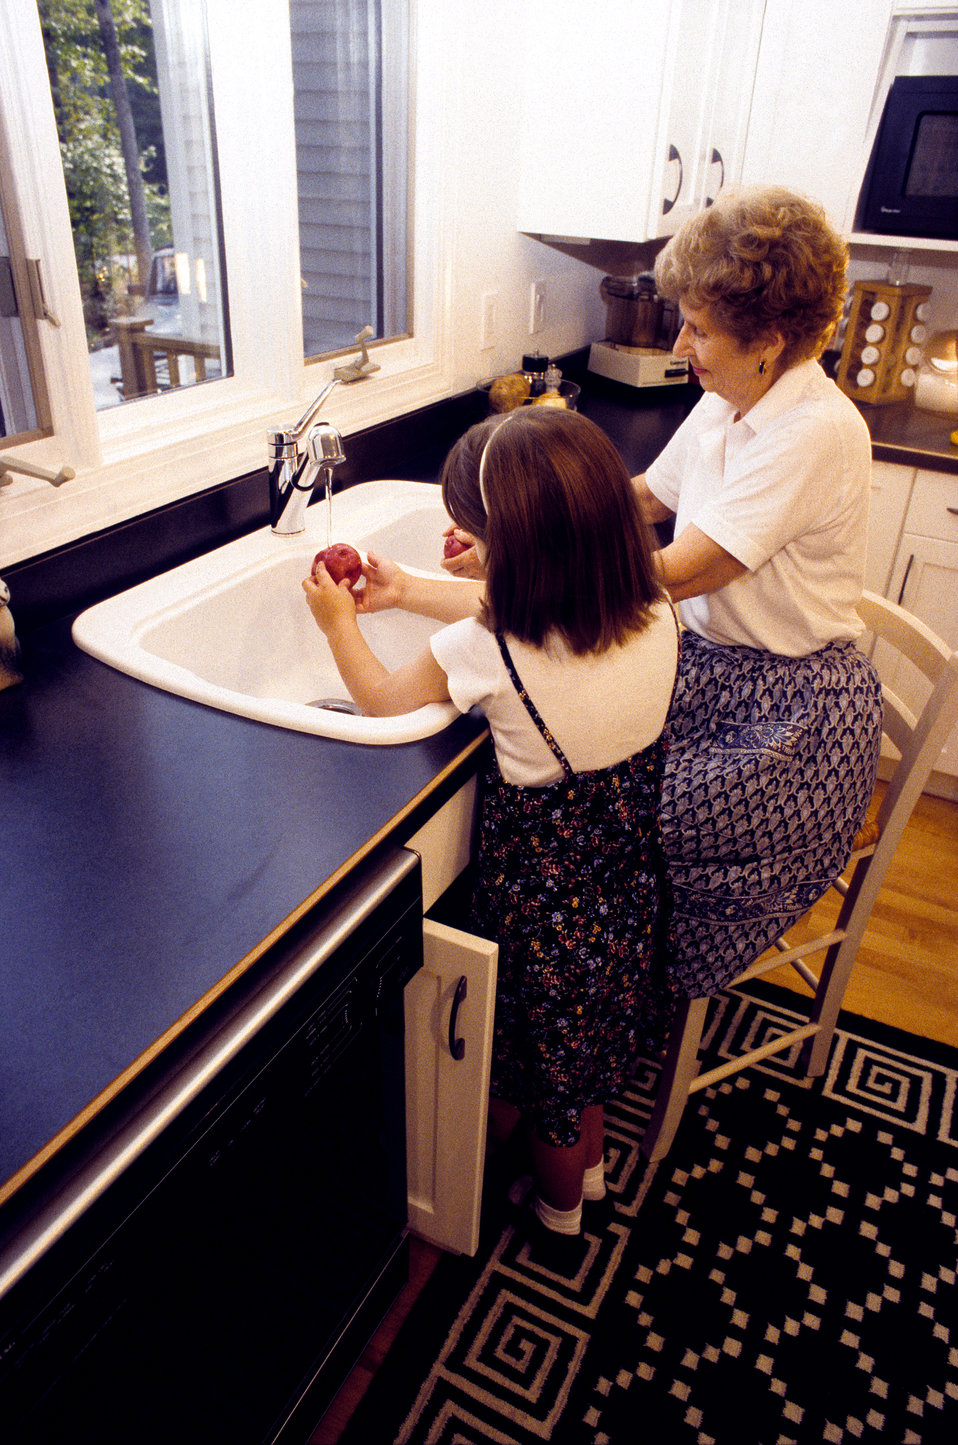 : This grandmother and her granddaughter were in a customized kitchen outfitted with adaptable cabinetry, which allowed the elderly woman to